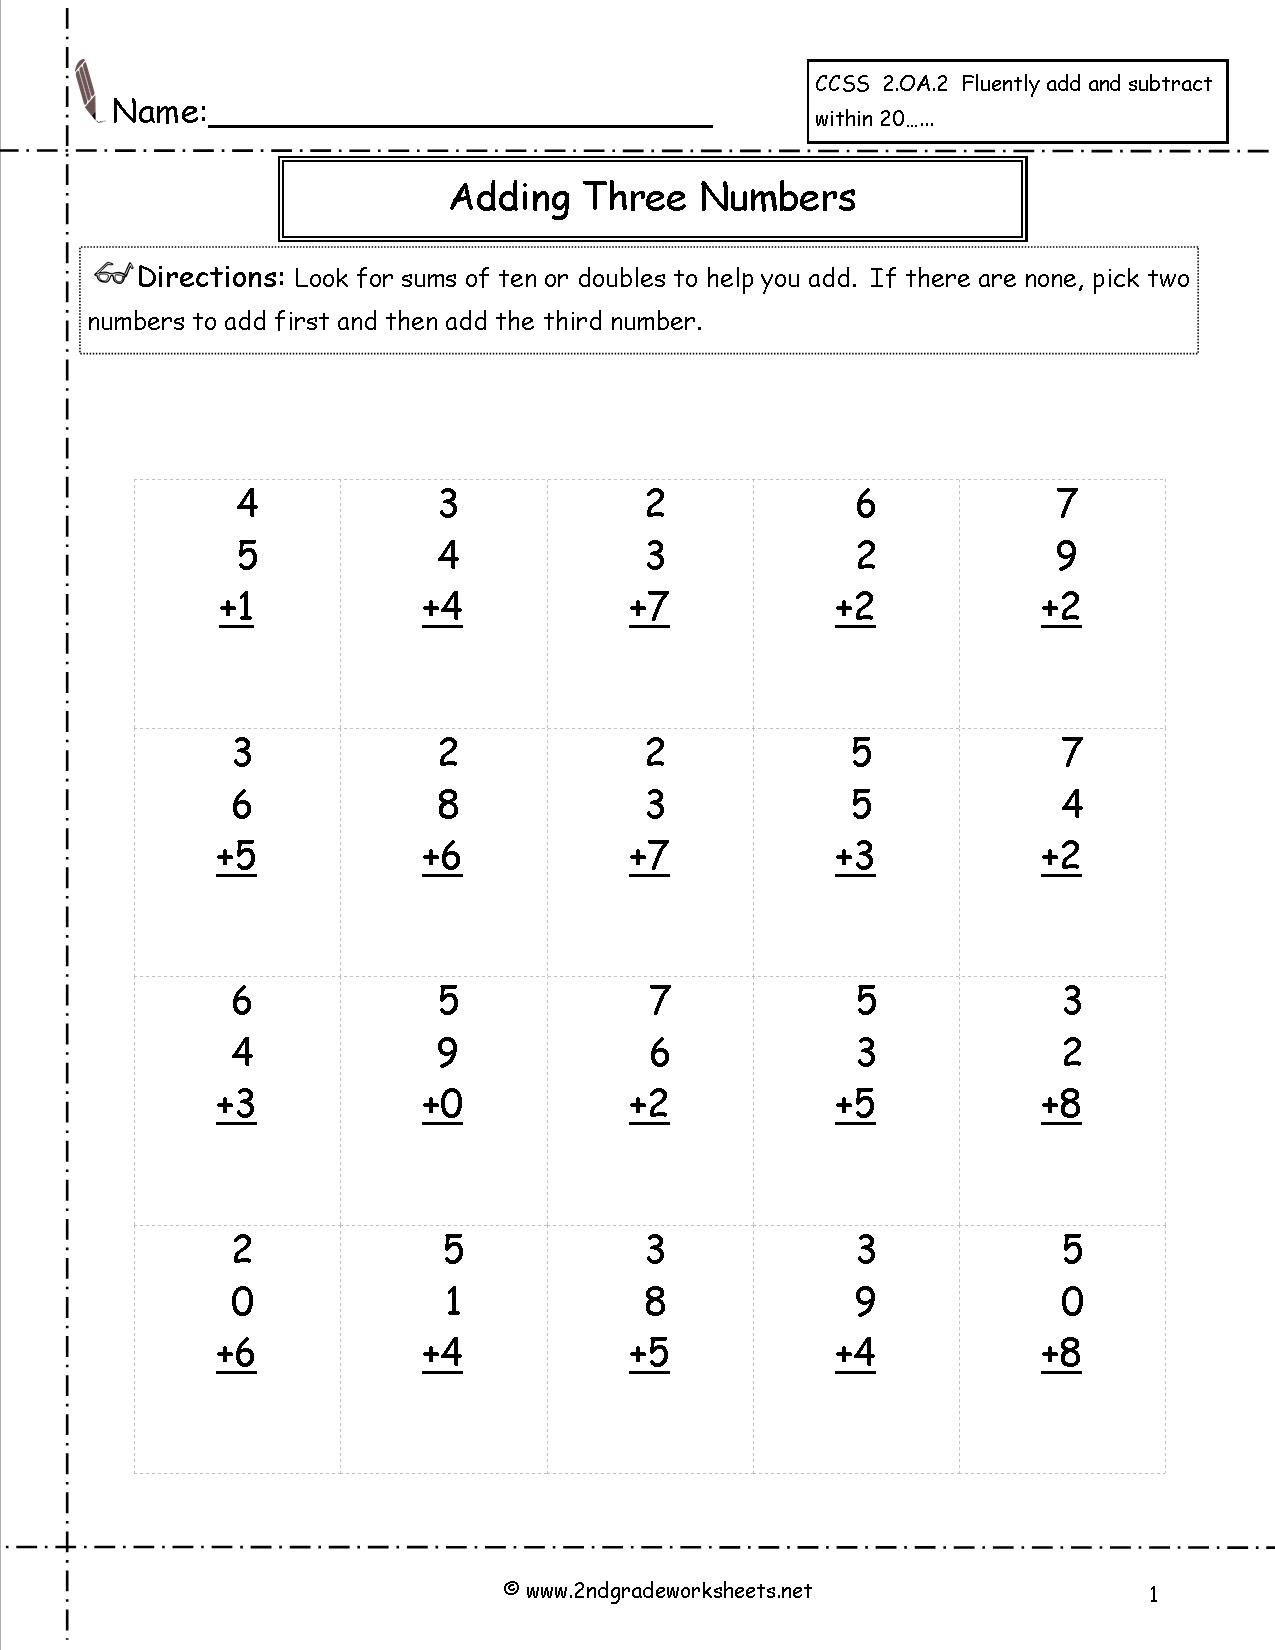 Free Math Worksheets And Printouts - Free Printable Math Problems For 2Nd Graders